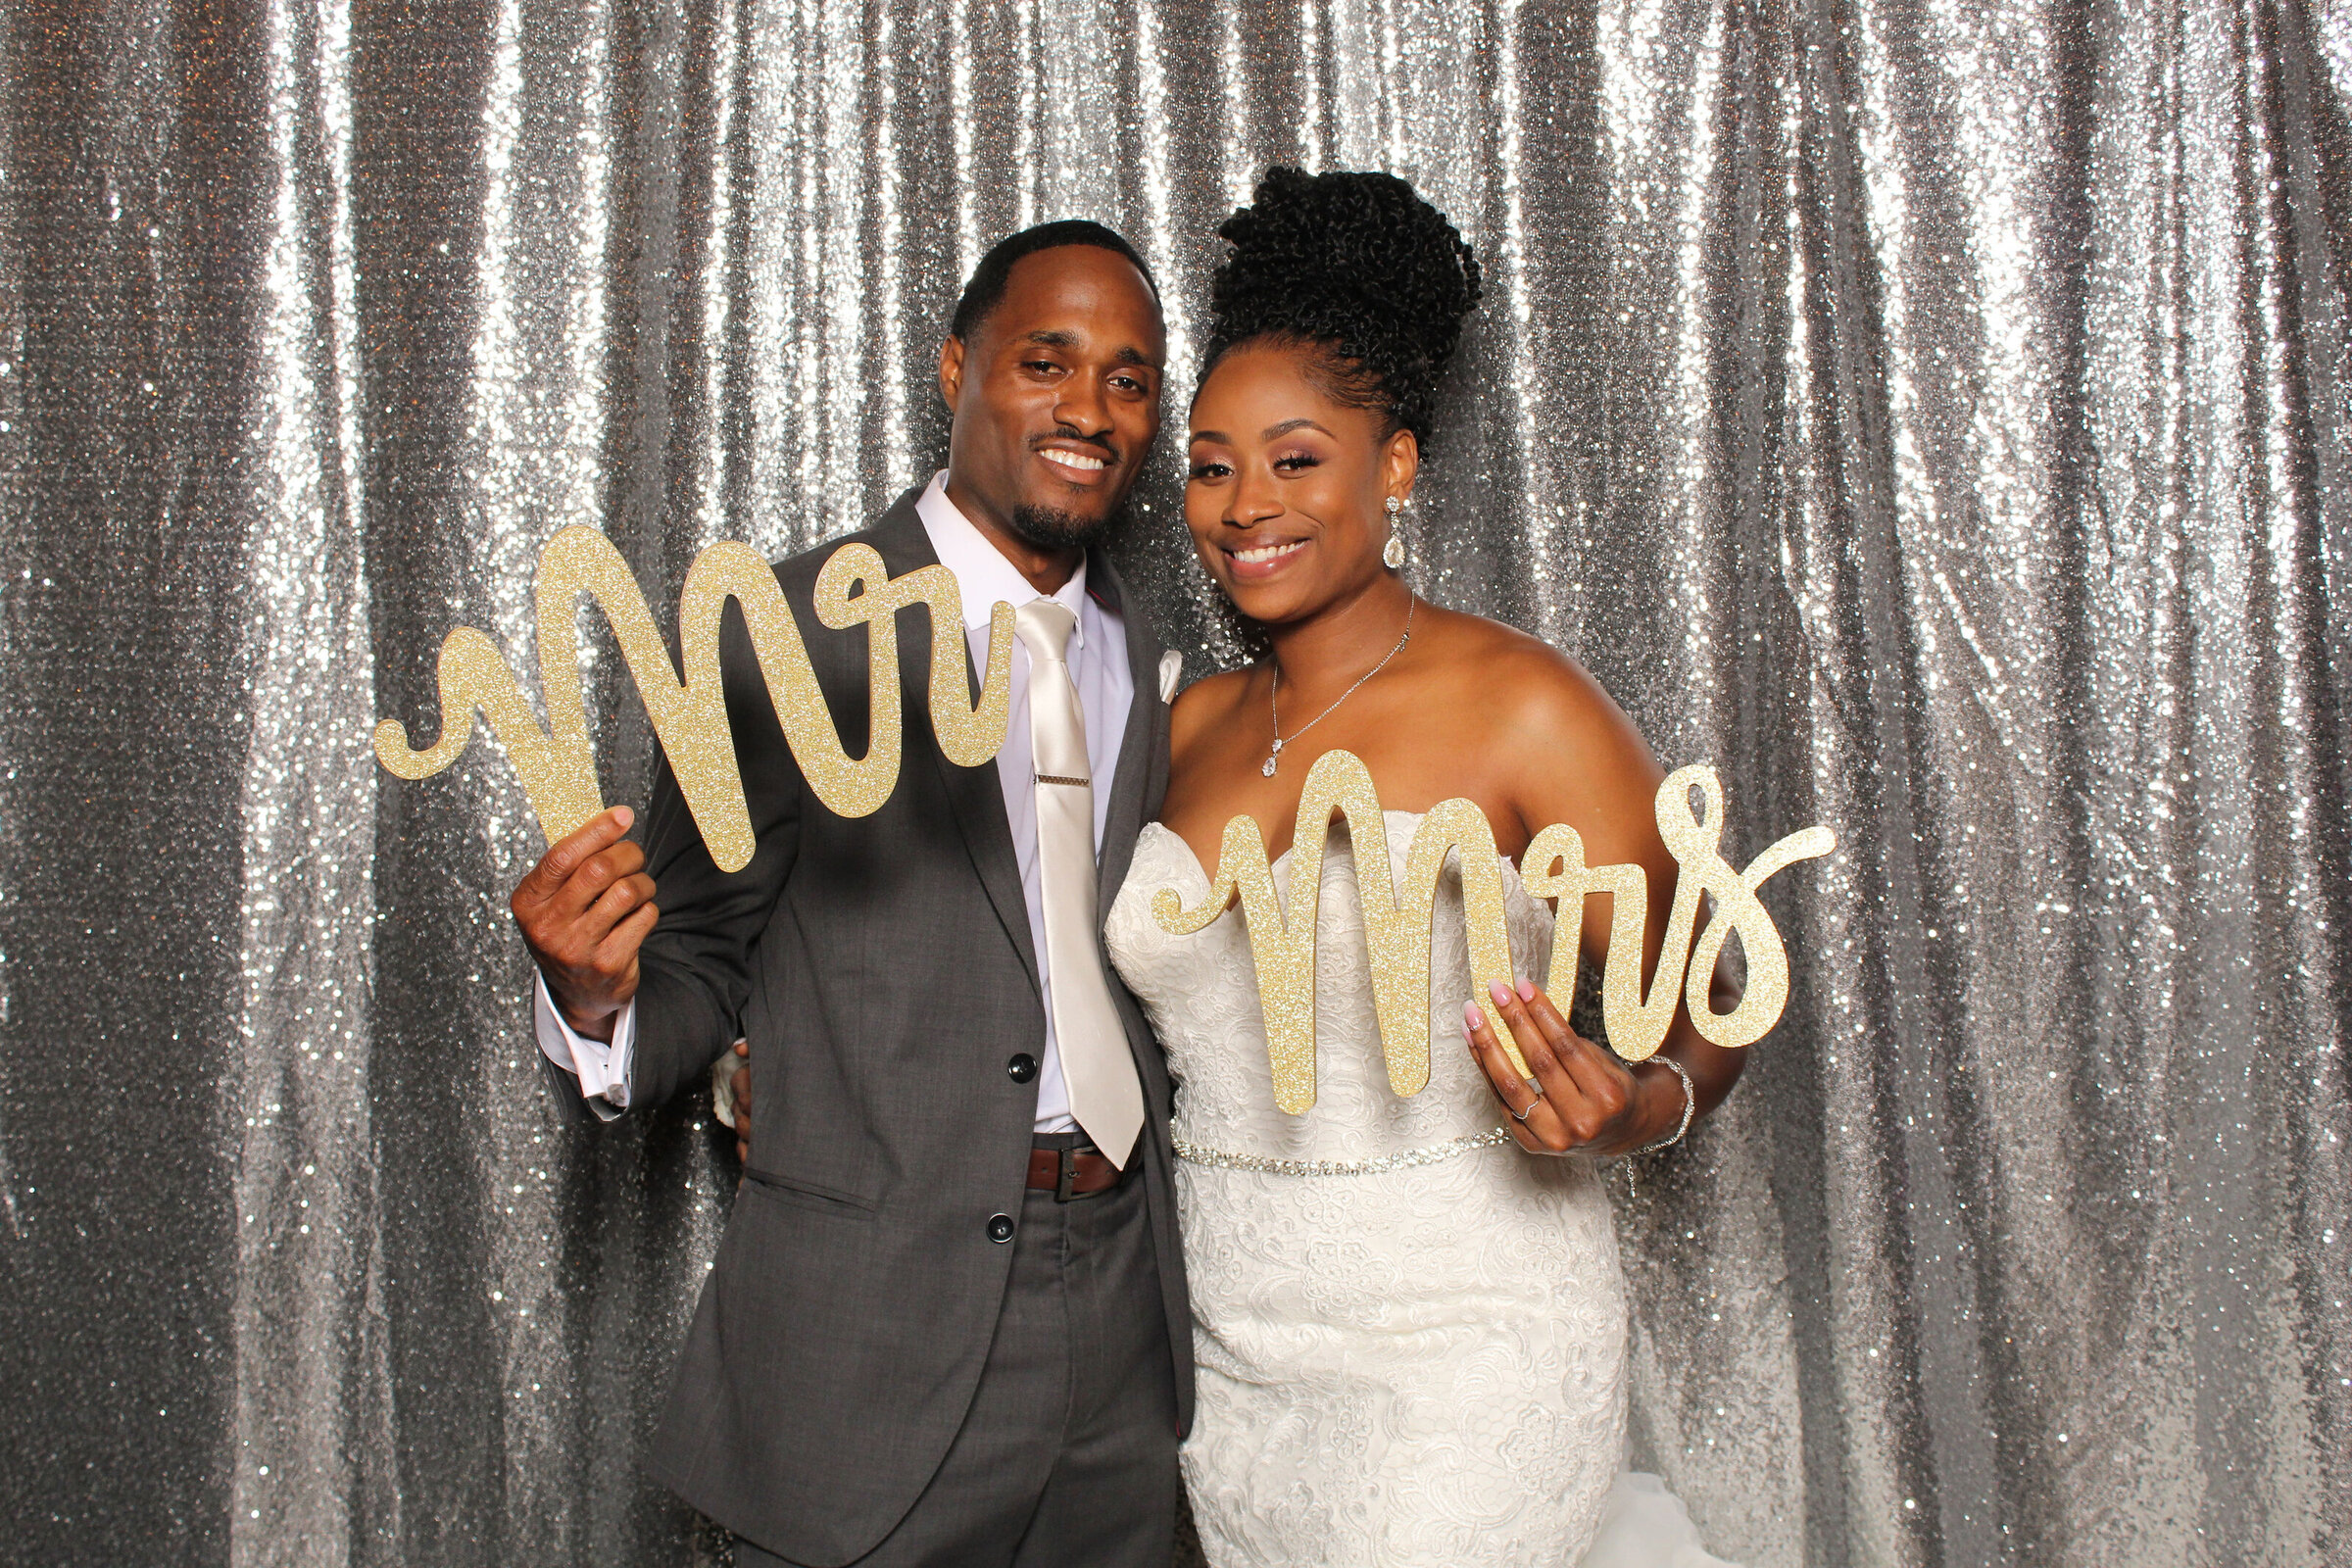 Jacksonville_Wedding_Photo_Booth_Rental